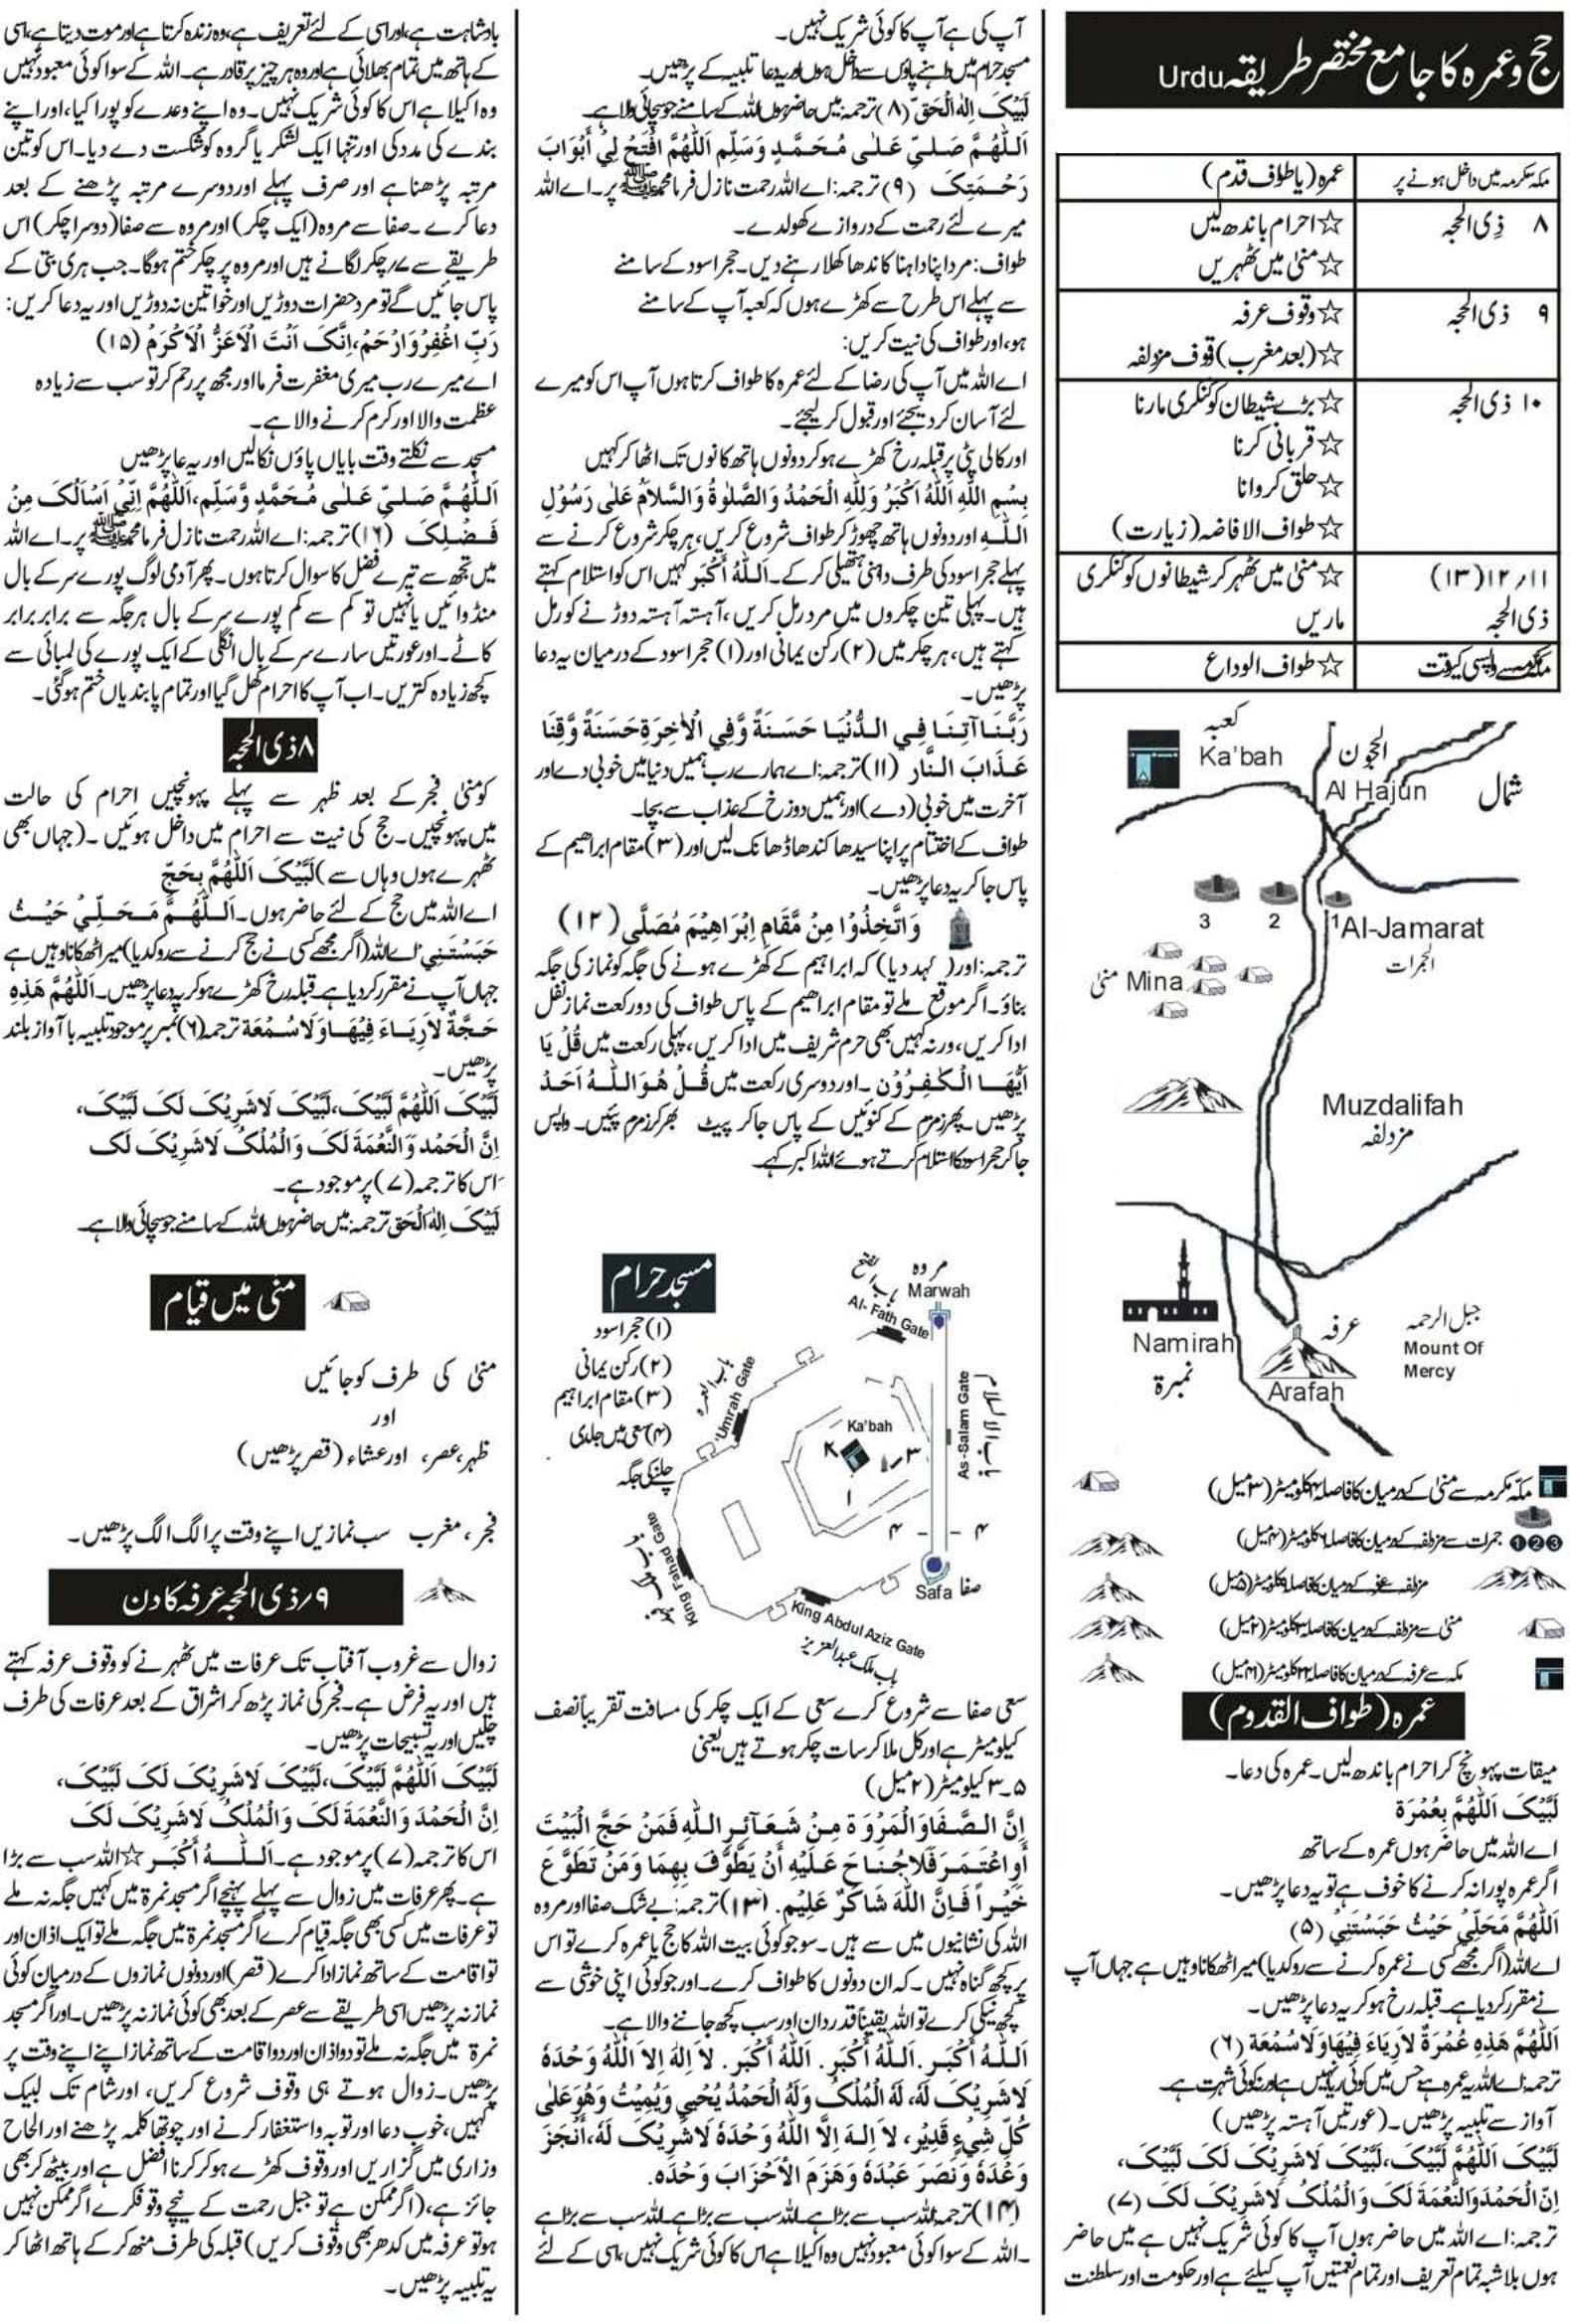 Hajj Guide in Urdu